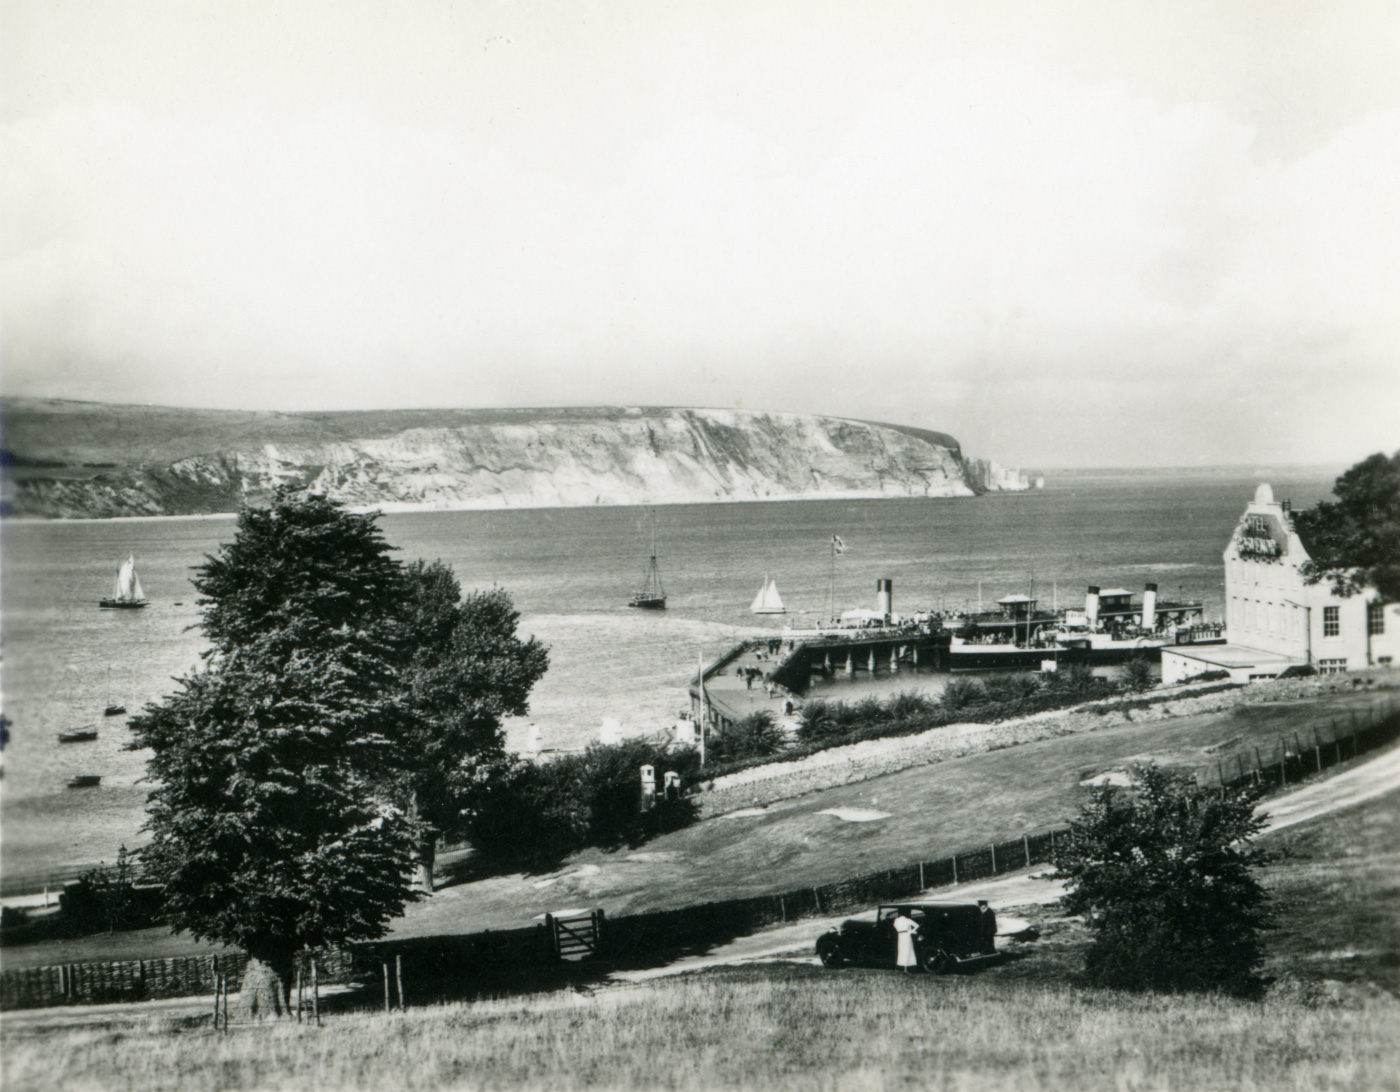 The Downs and Pier with Paddle Steamers